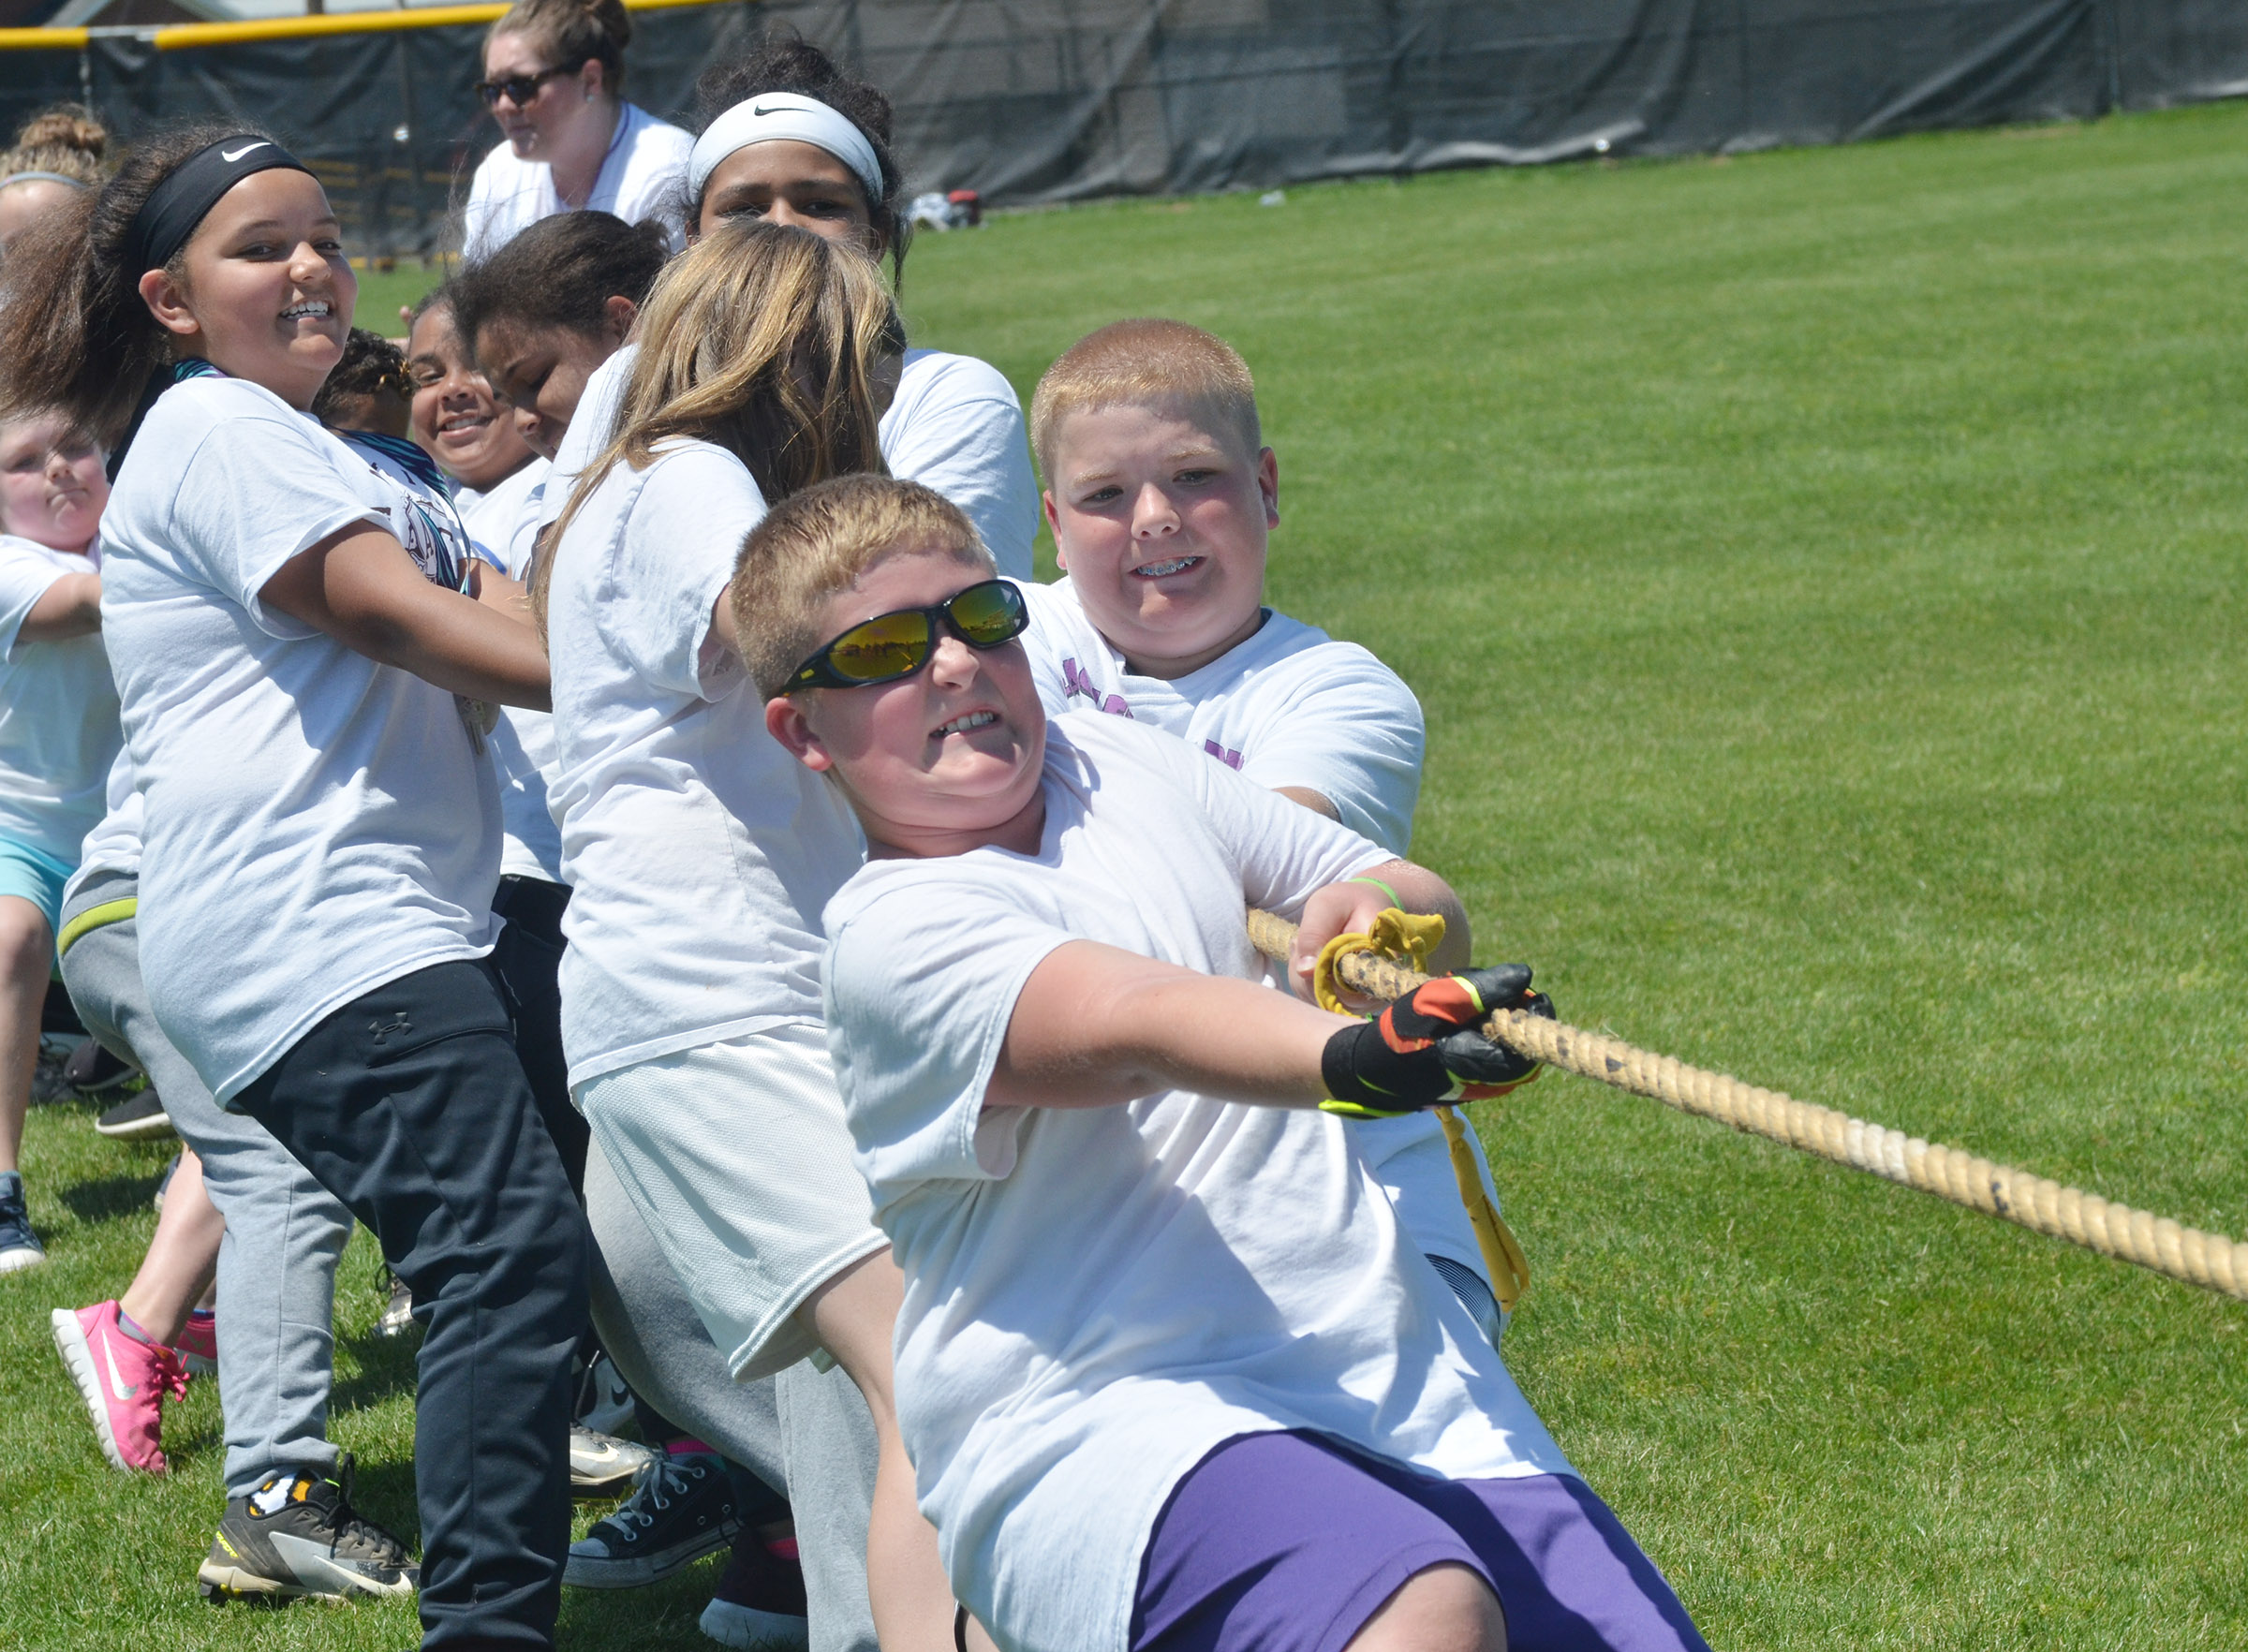 CMS fifth-graders Lance Knifley, at left, and Ryan Grubbs lead their team in tug of war.